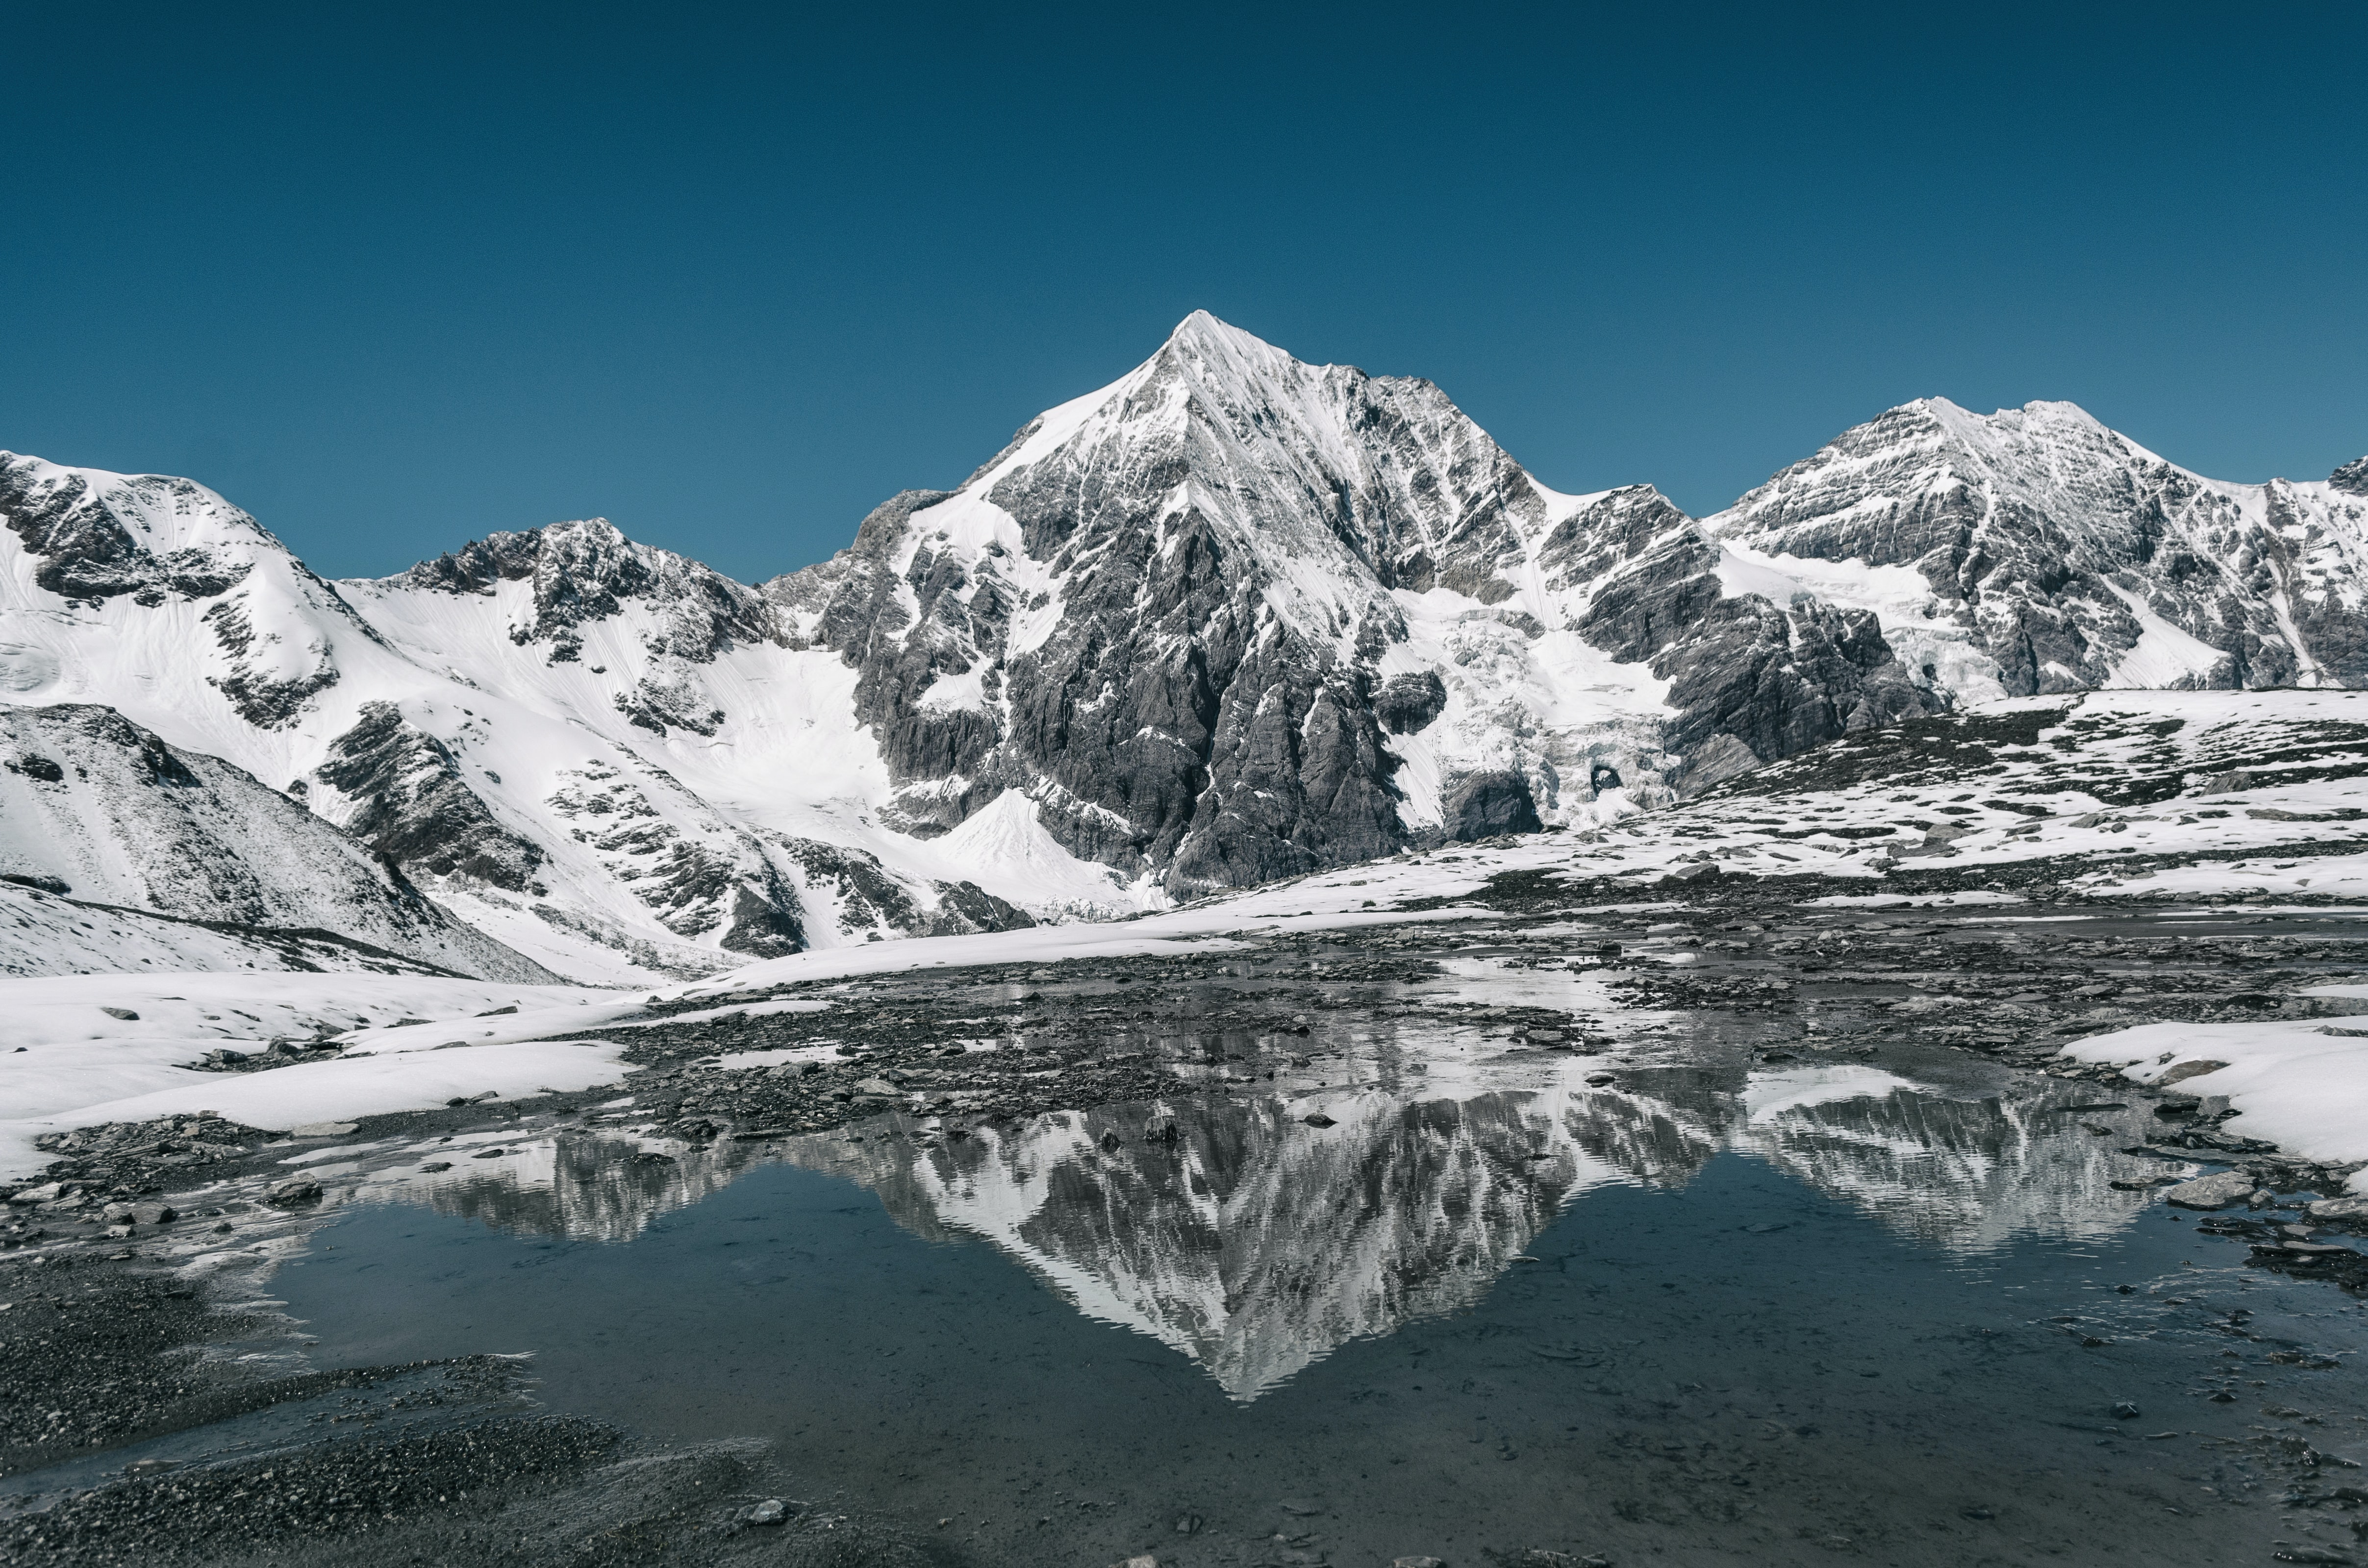 Snowy peaks of Ortler reflected in the icy water